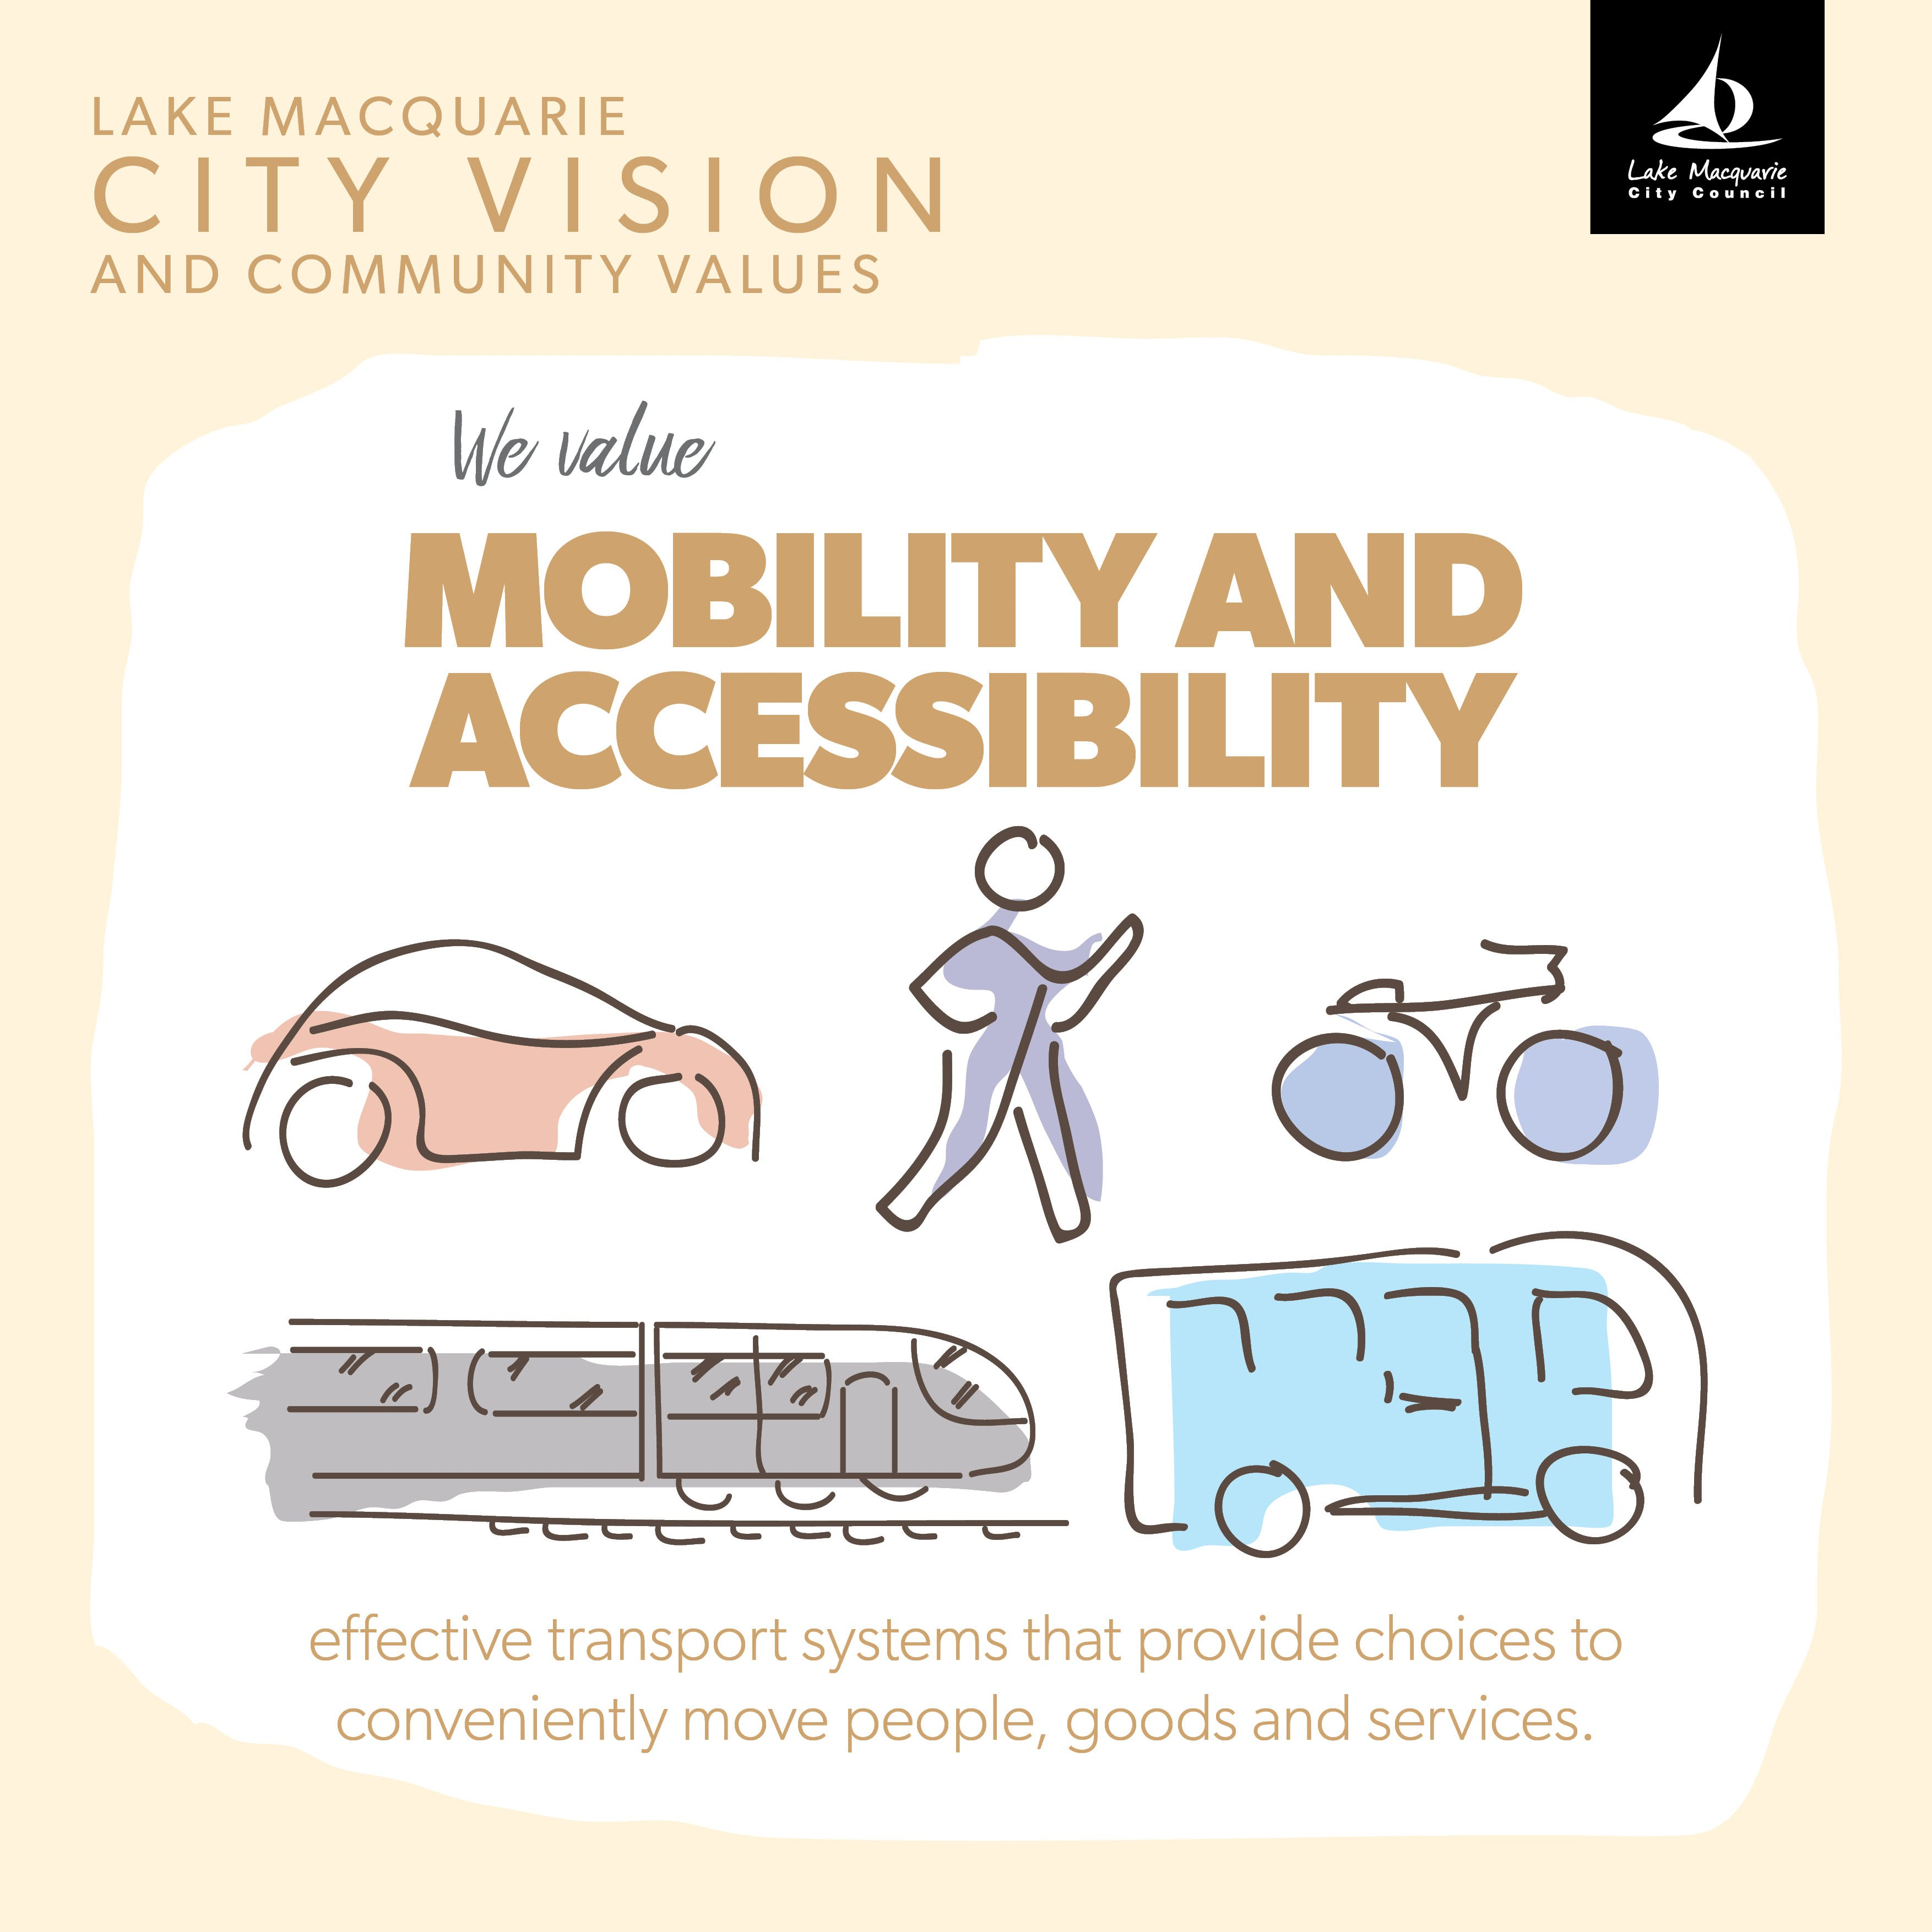 mobility and accessibility